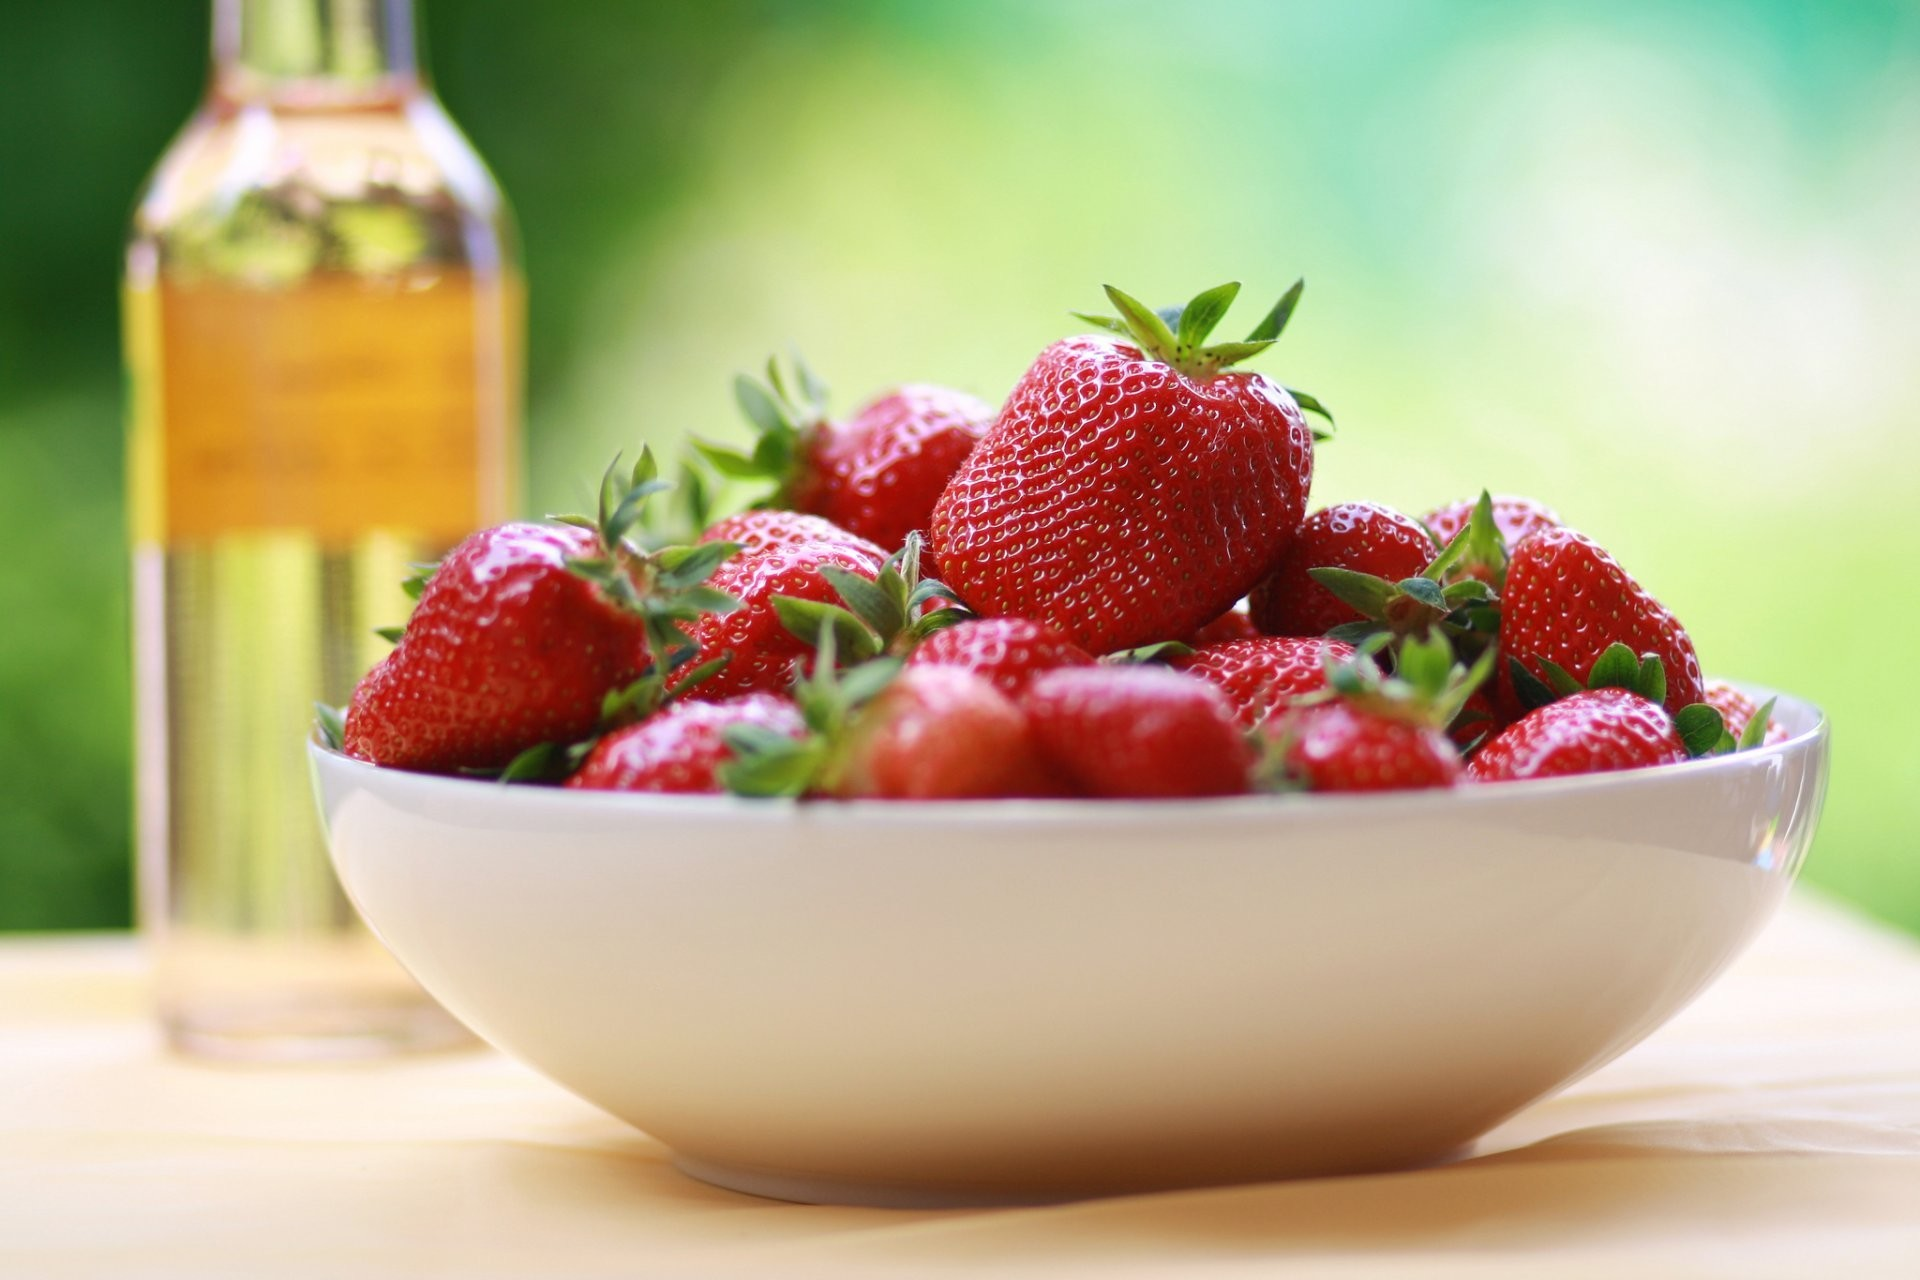 food berry strawberry red dish background wallpaper widescreen full screen  widescreen hd wallpapers background wallpaper widescreen